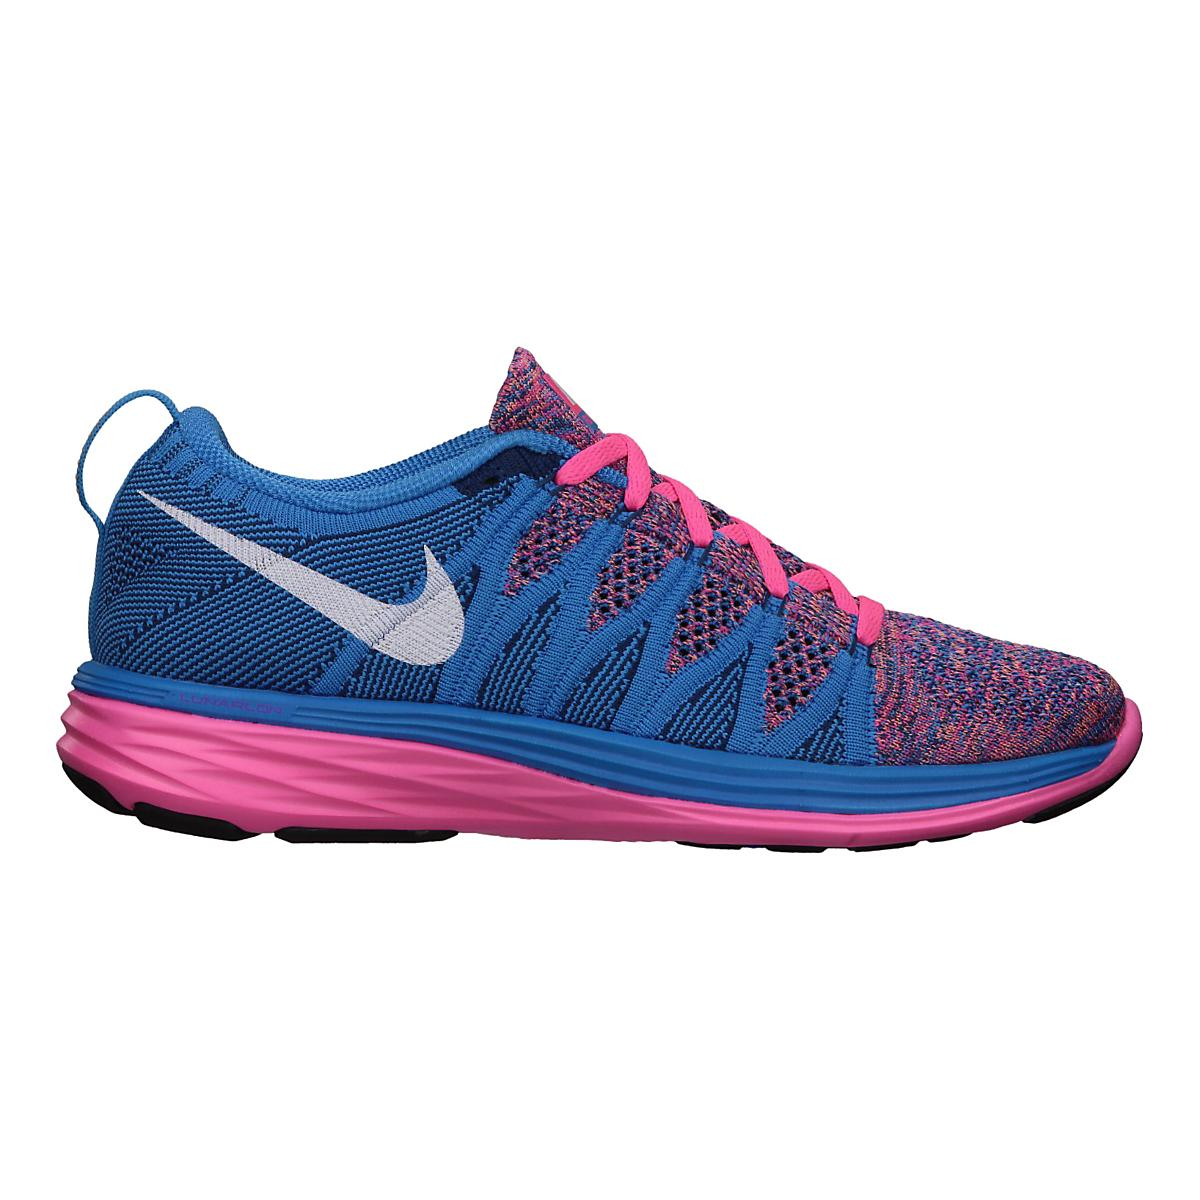 online store c4f94 5d847 ... wholesale womens nike flyknit lunar2 running shoe at road runner sports  6dd26 52ae2